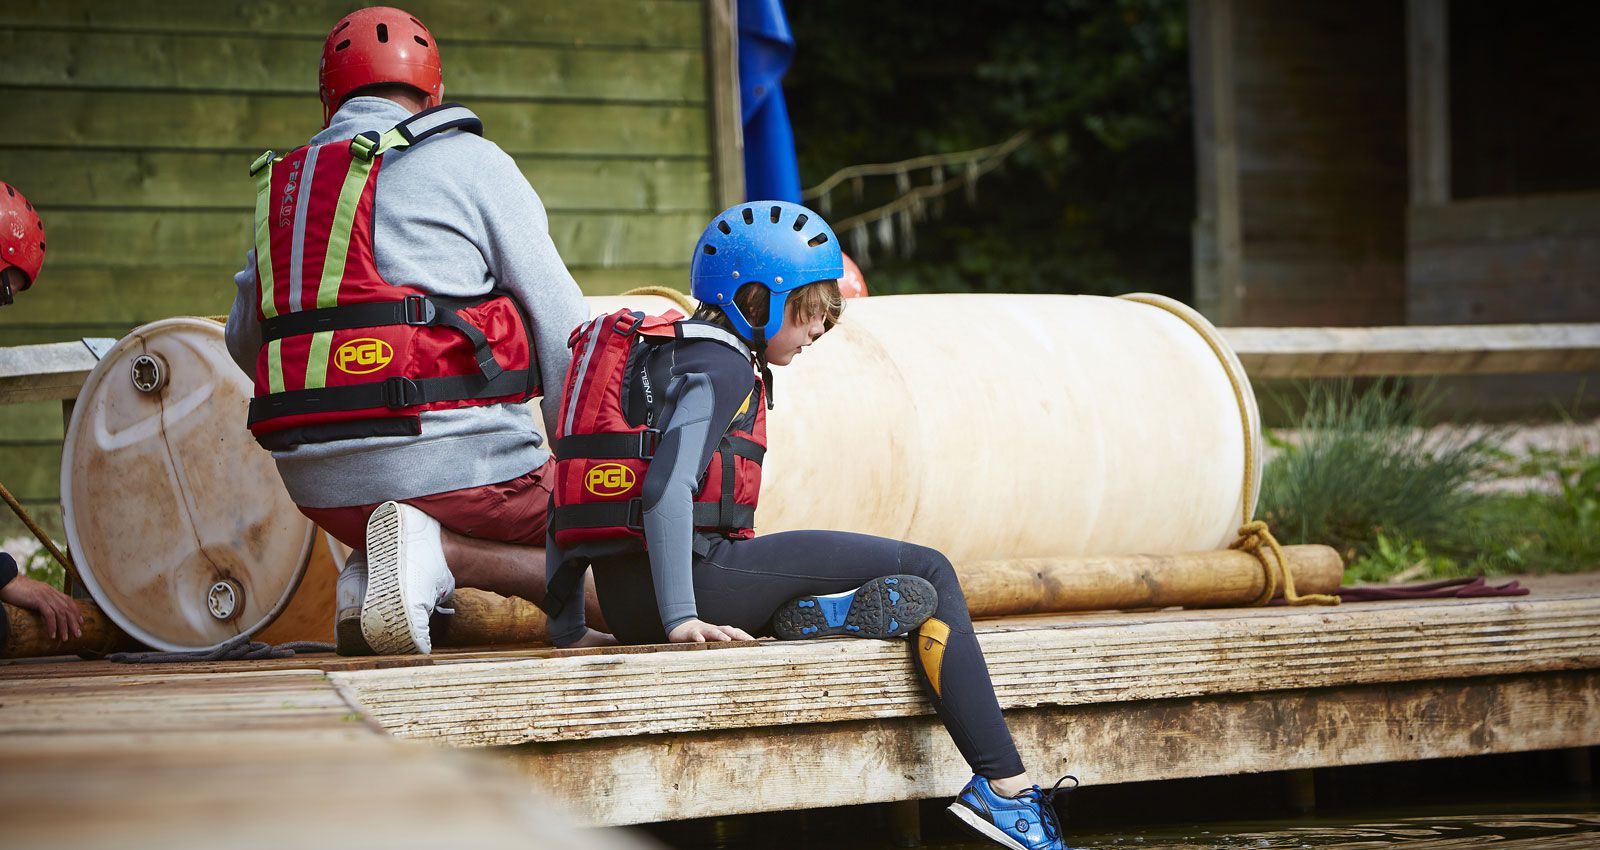 PGL Family Adventures - Family Activity Holidays - PGL Centres - Family Accommodation - UK and France - Activity Holidays, Short Breaks, Adventure Days - 2015